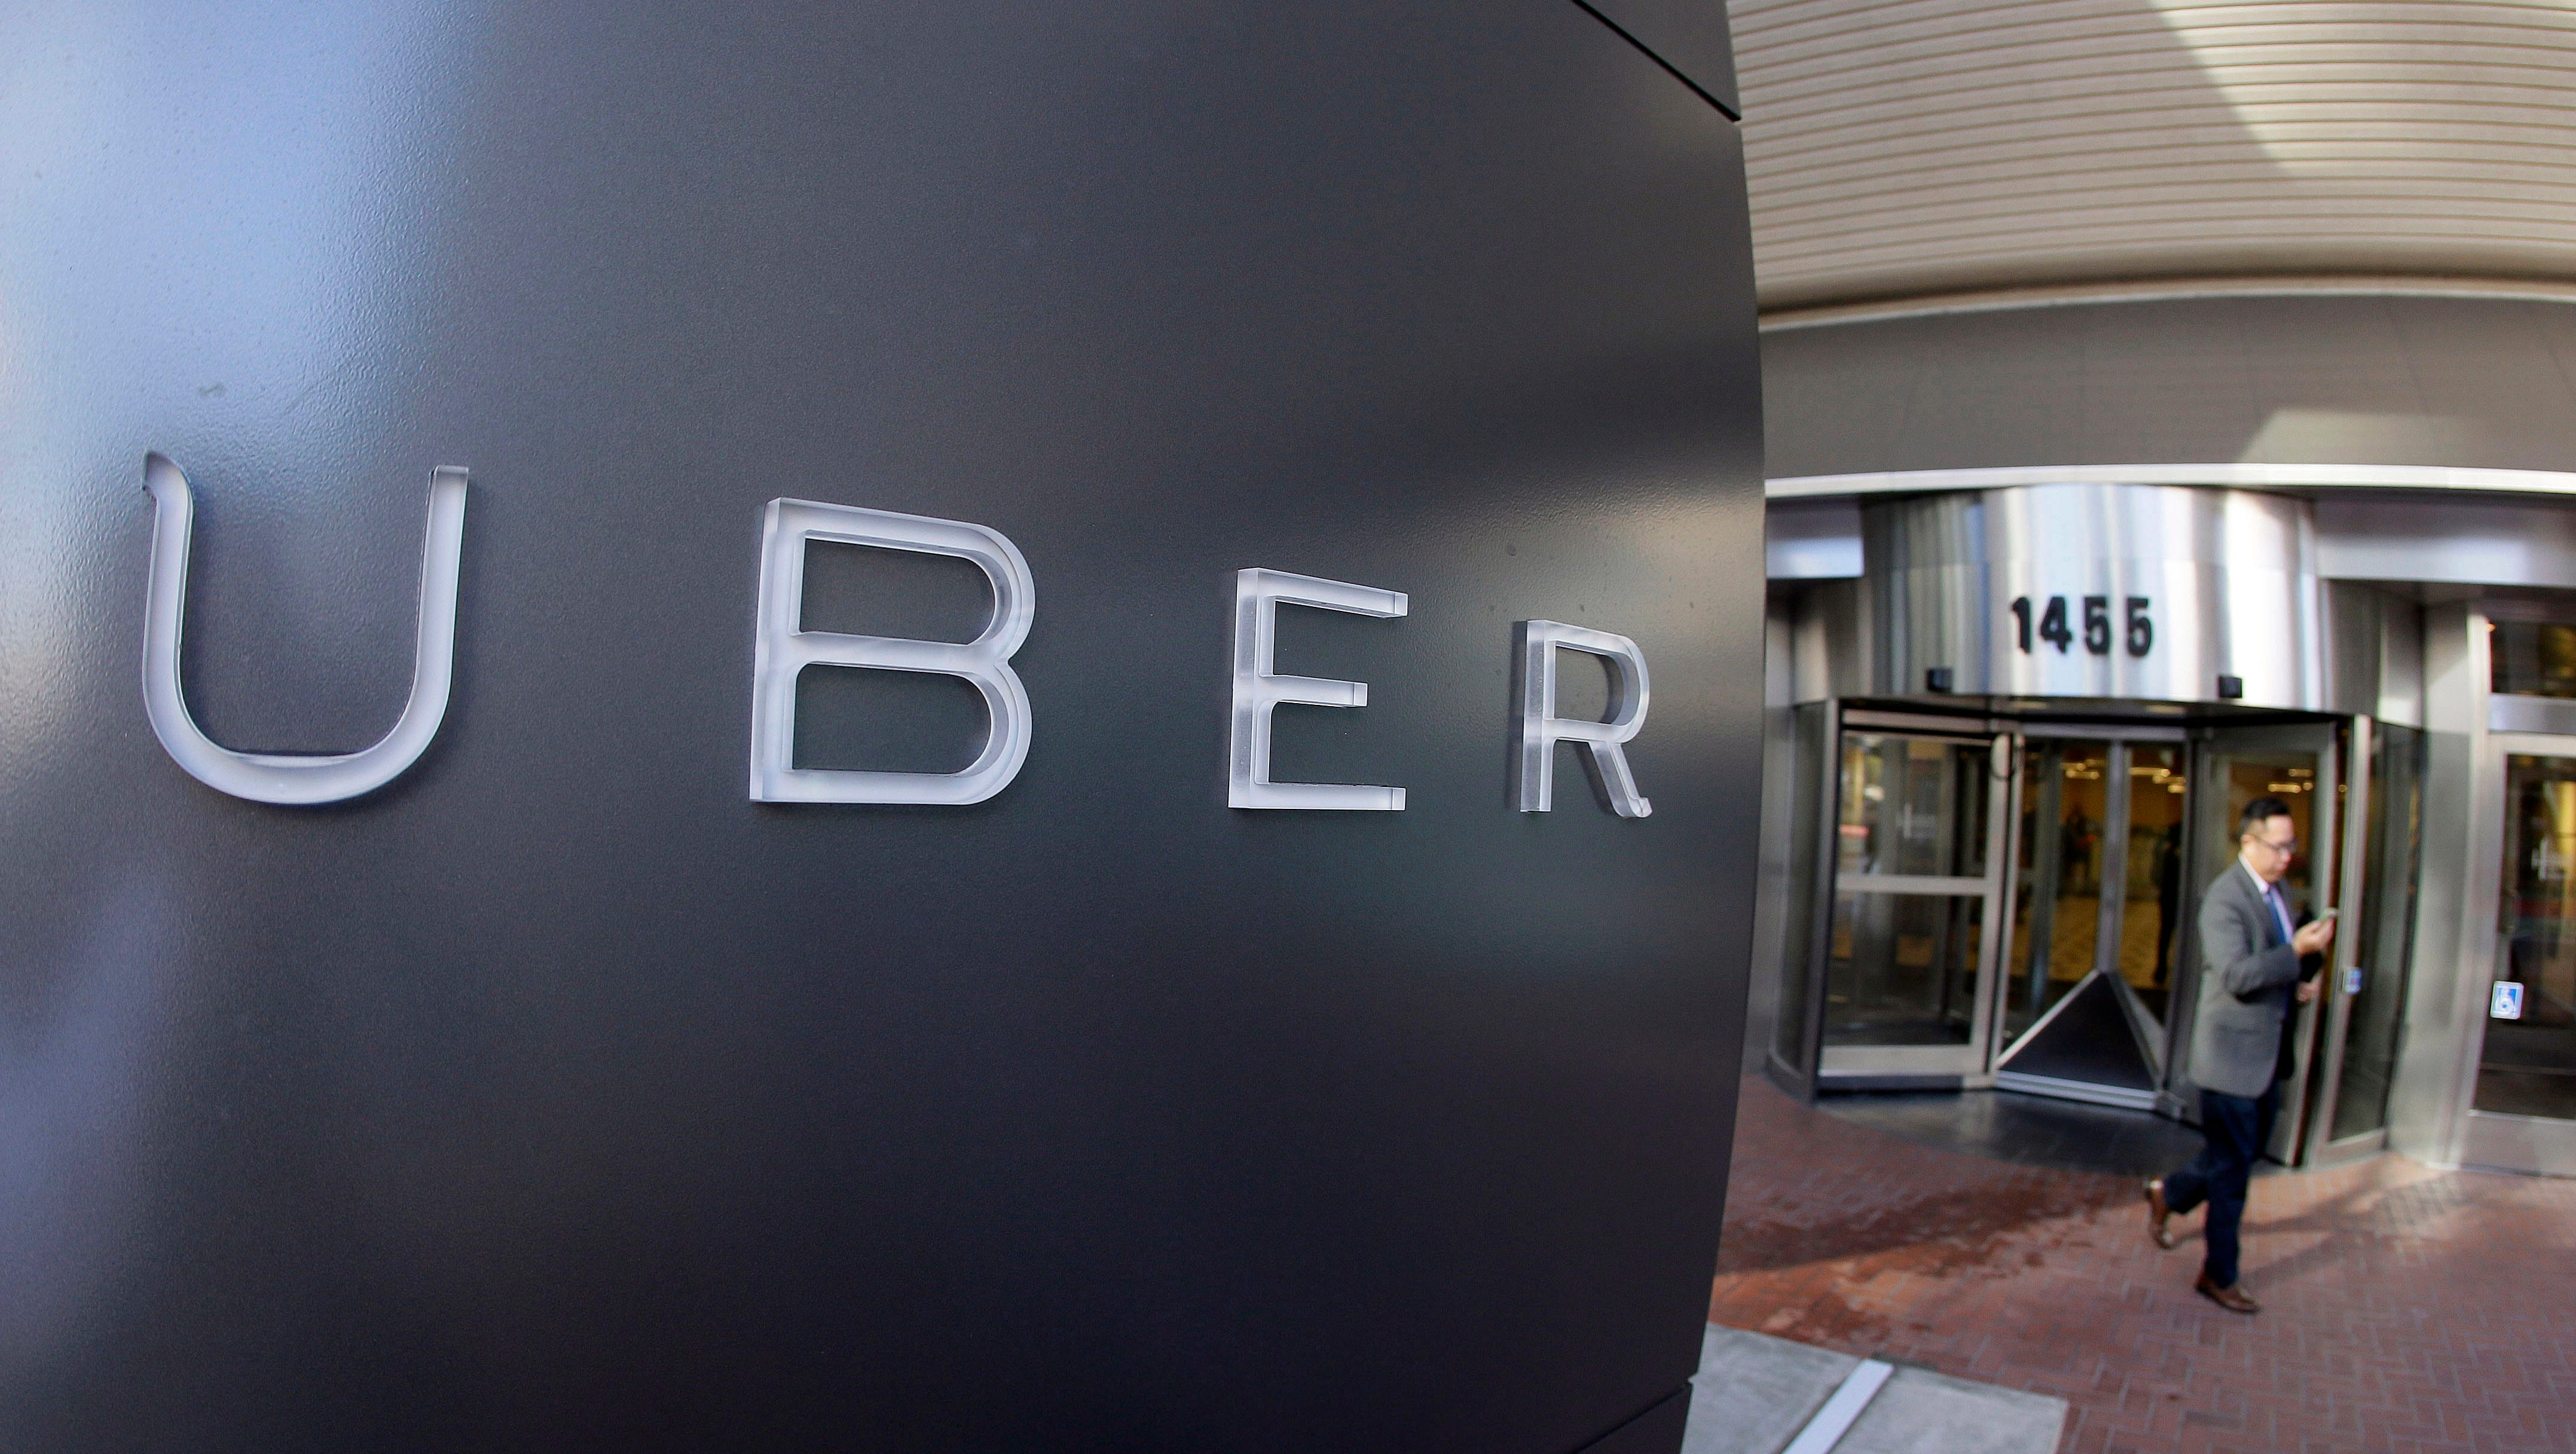 FILE - In this Dec. 16, 2014, file photo a man leaves the headquarters of Uber in San Francisco. Uber said Wednesday, June 1, 2016, that it is getting a massive cash infusion from Saudi Arabia. (AP Photo/Eric Risberg, File) ORG XMIT: NY121